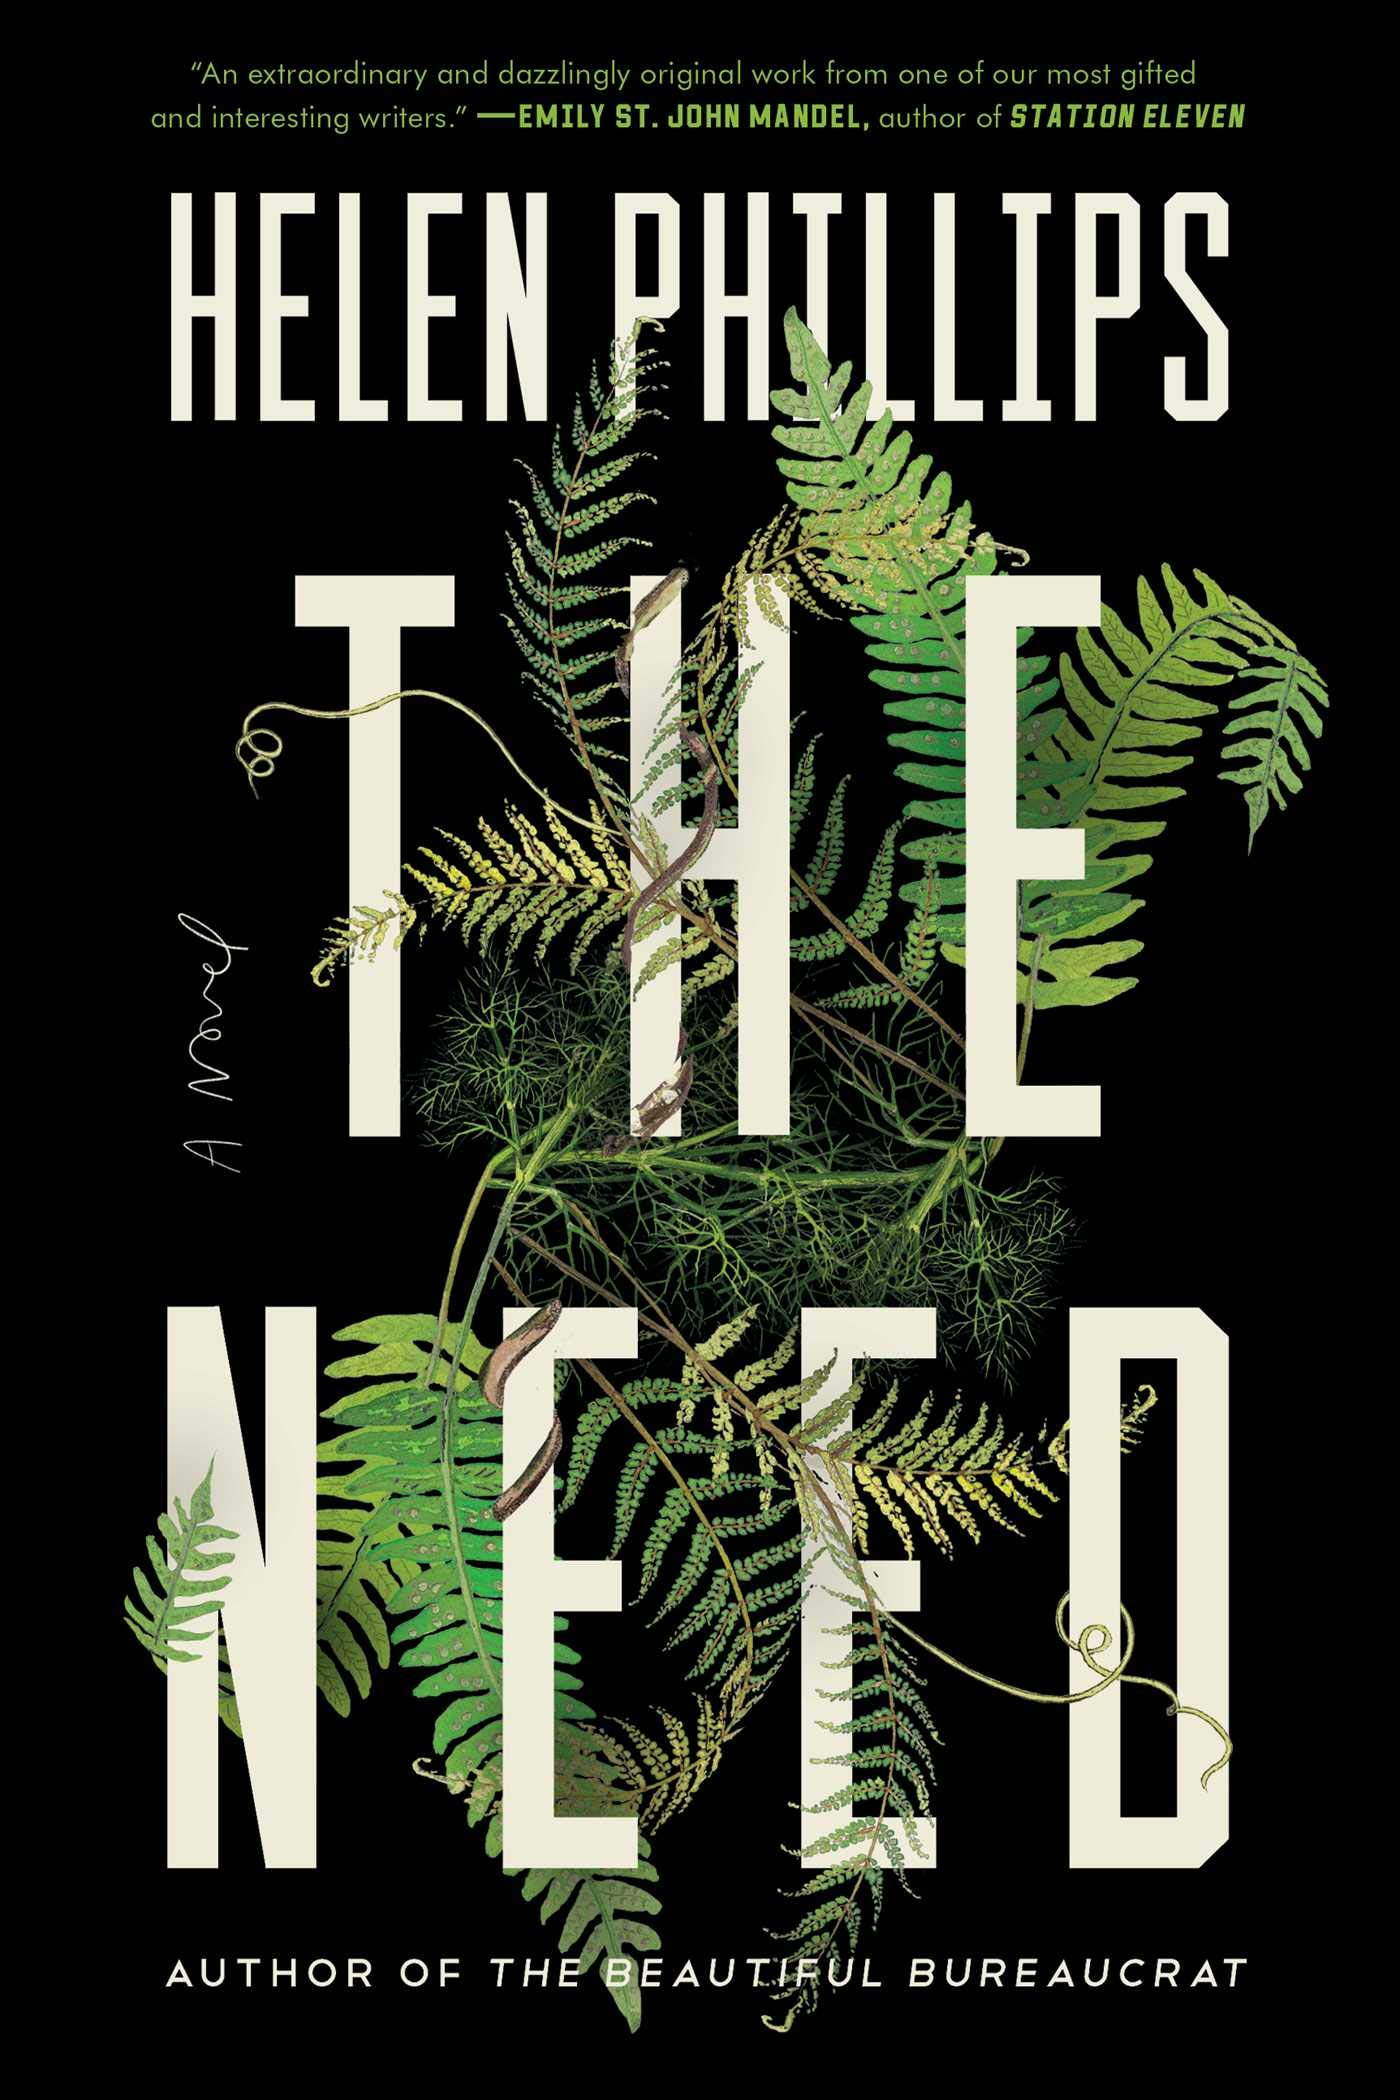 Black book cover with green leaves and white text